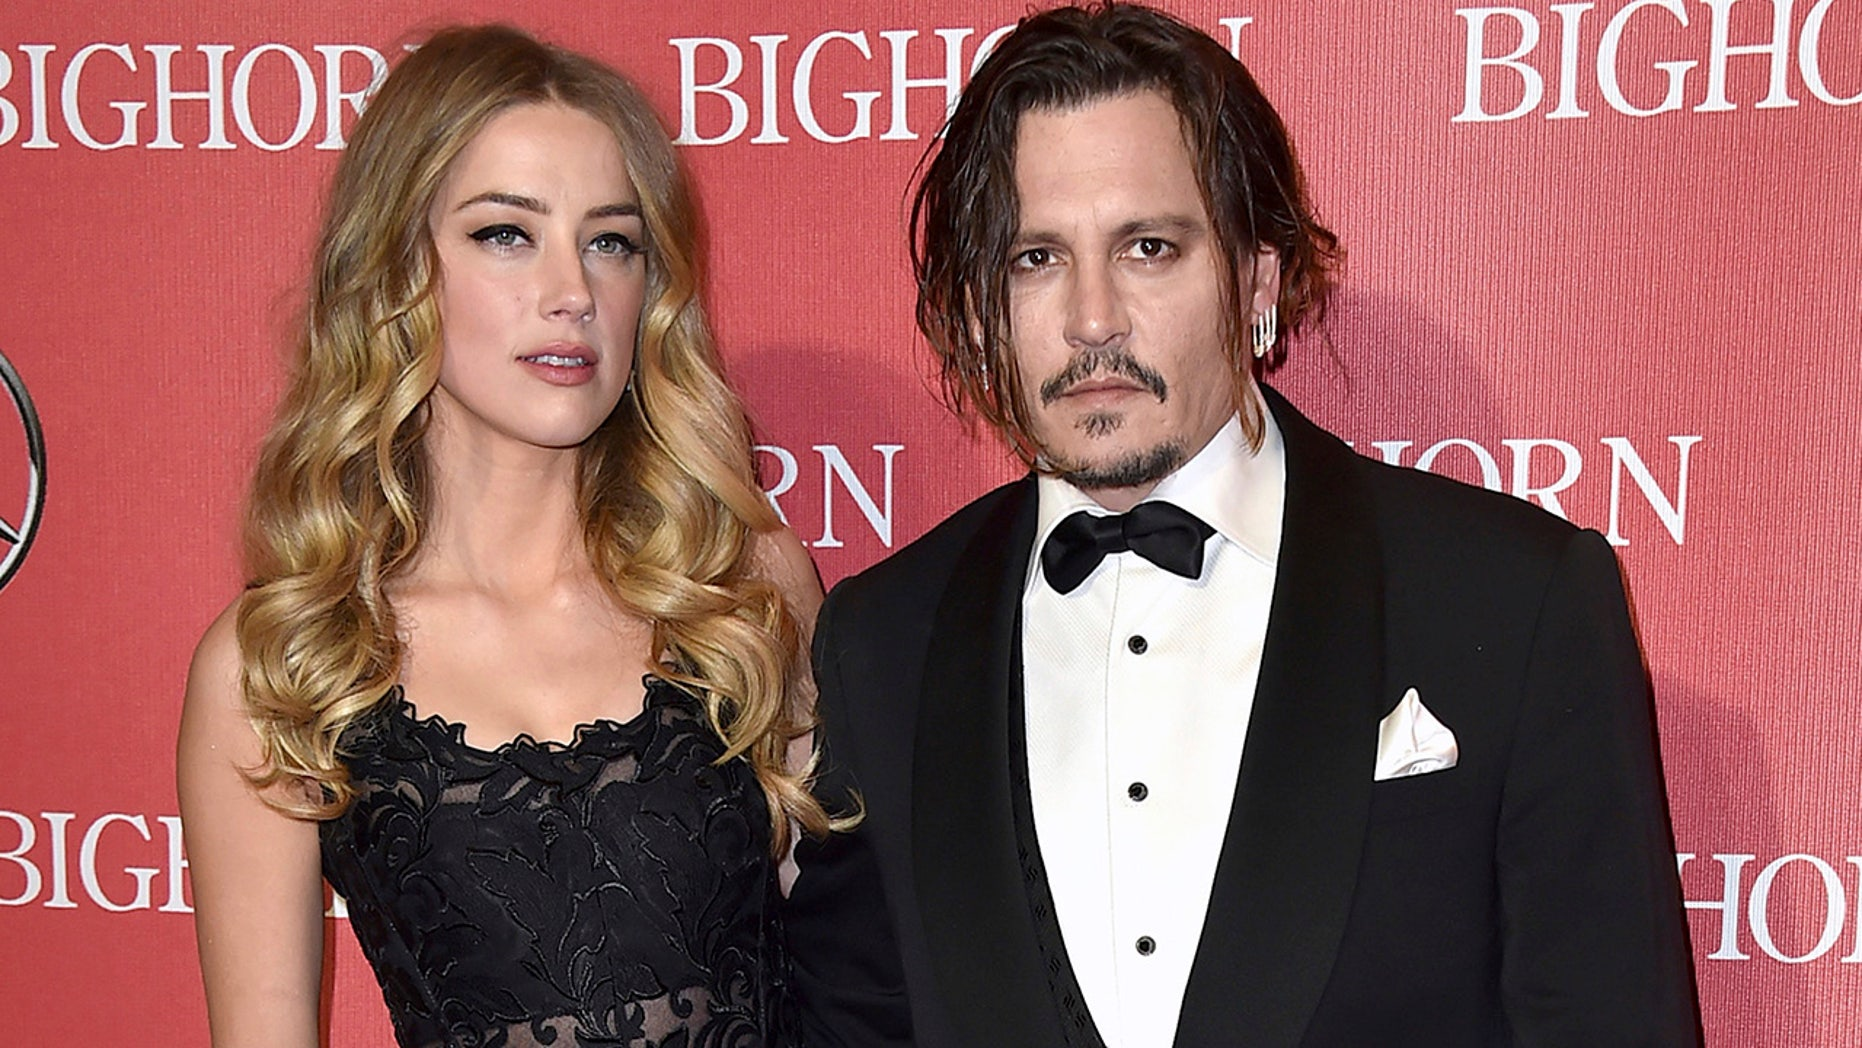 Amber Heard,and Johnny Depp arrive at the 27th annual Palm Springs International Film Festival Awards Gala in Palm Springs, Calif., Jan. 2, 2016. (Associated Press)